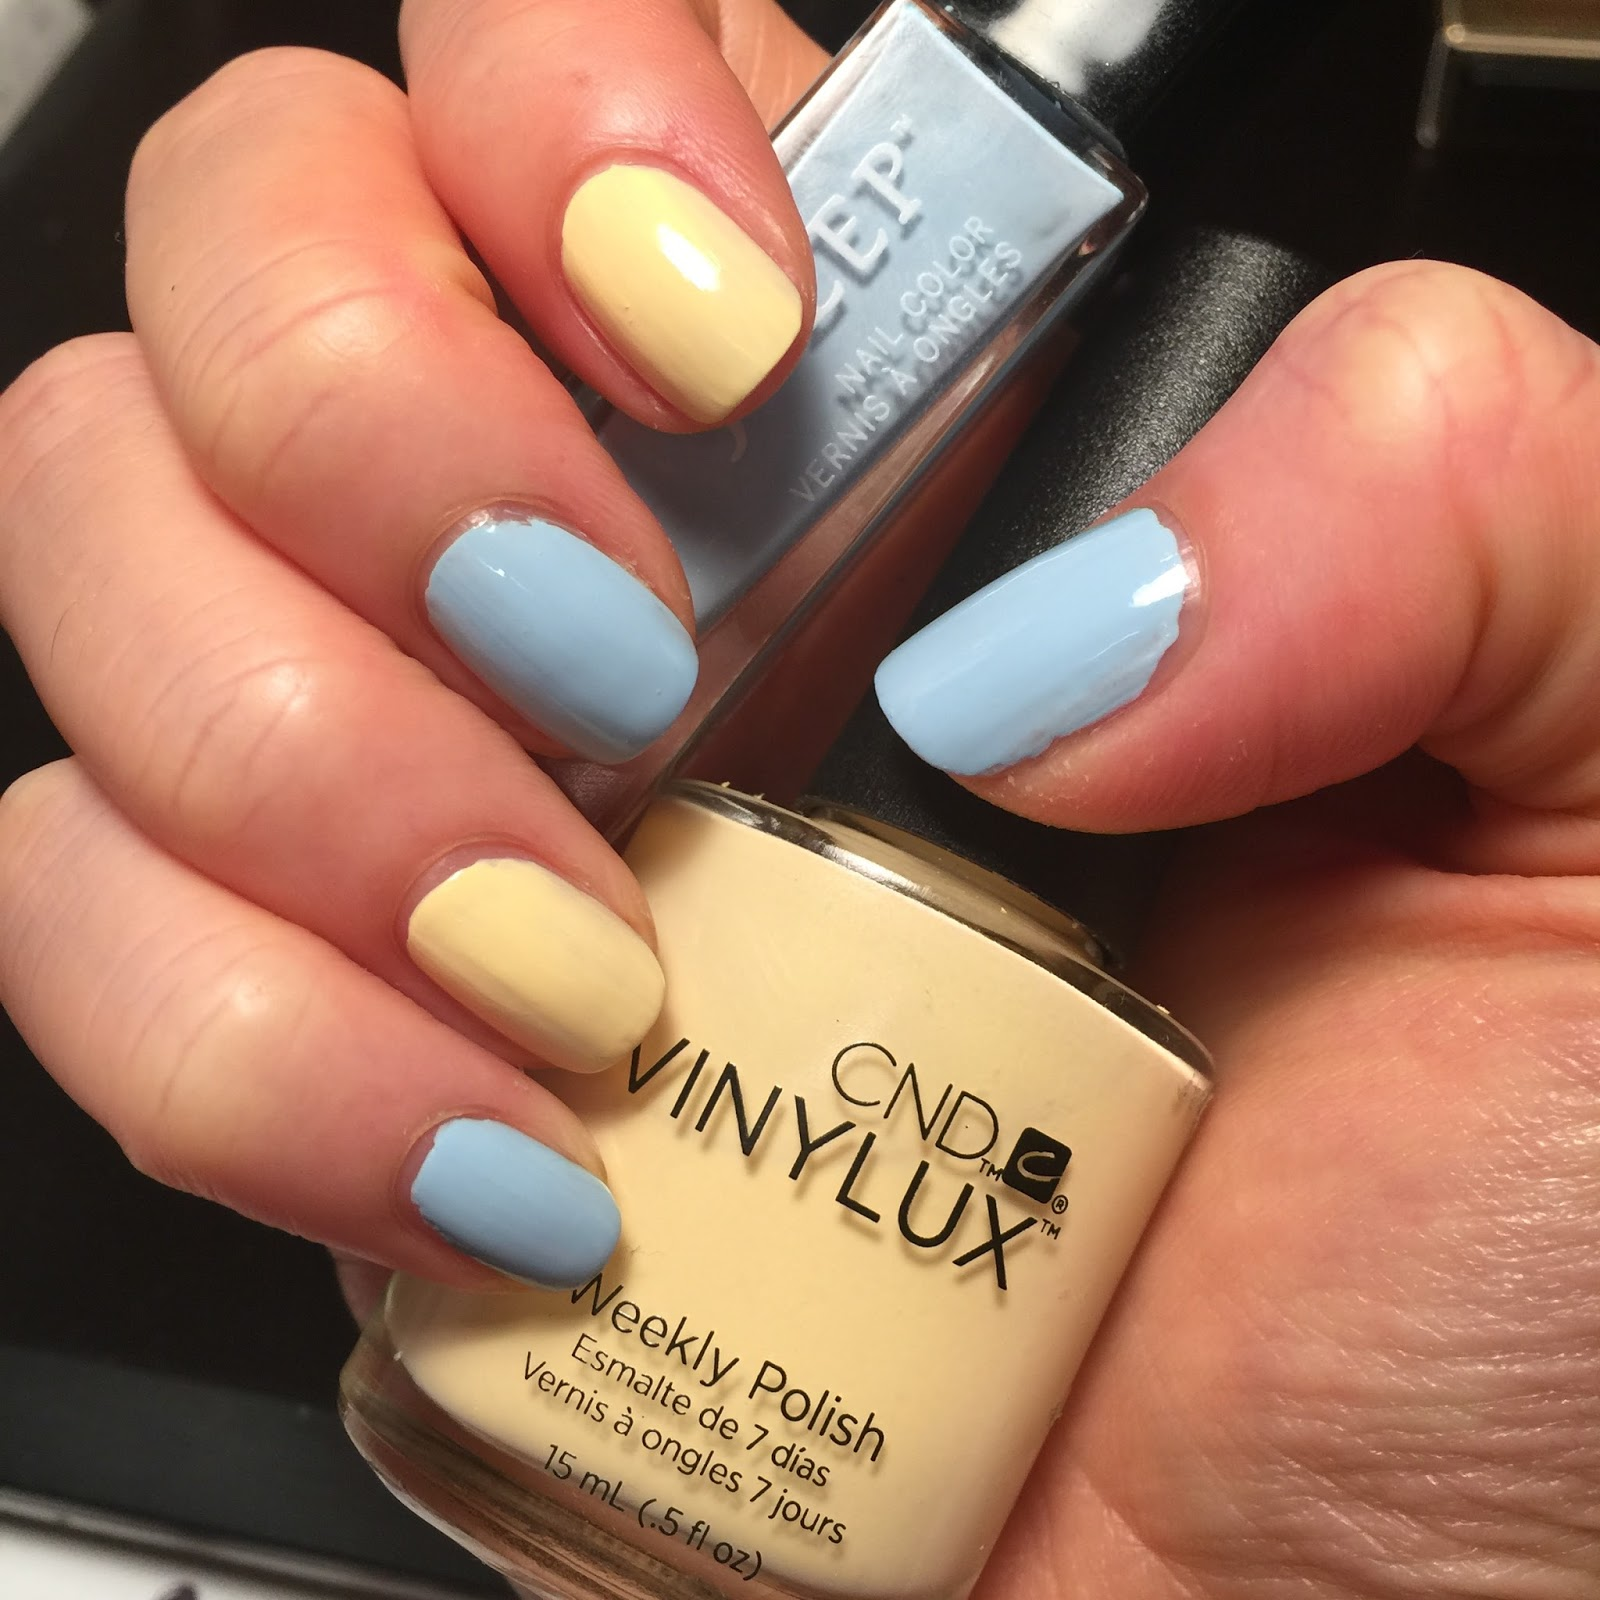 For The Base I Chose A Baby Blue And Yellow Polish You Can Pick Any Pastel Colors Of Your Choice